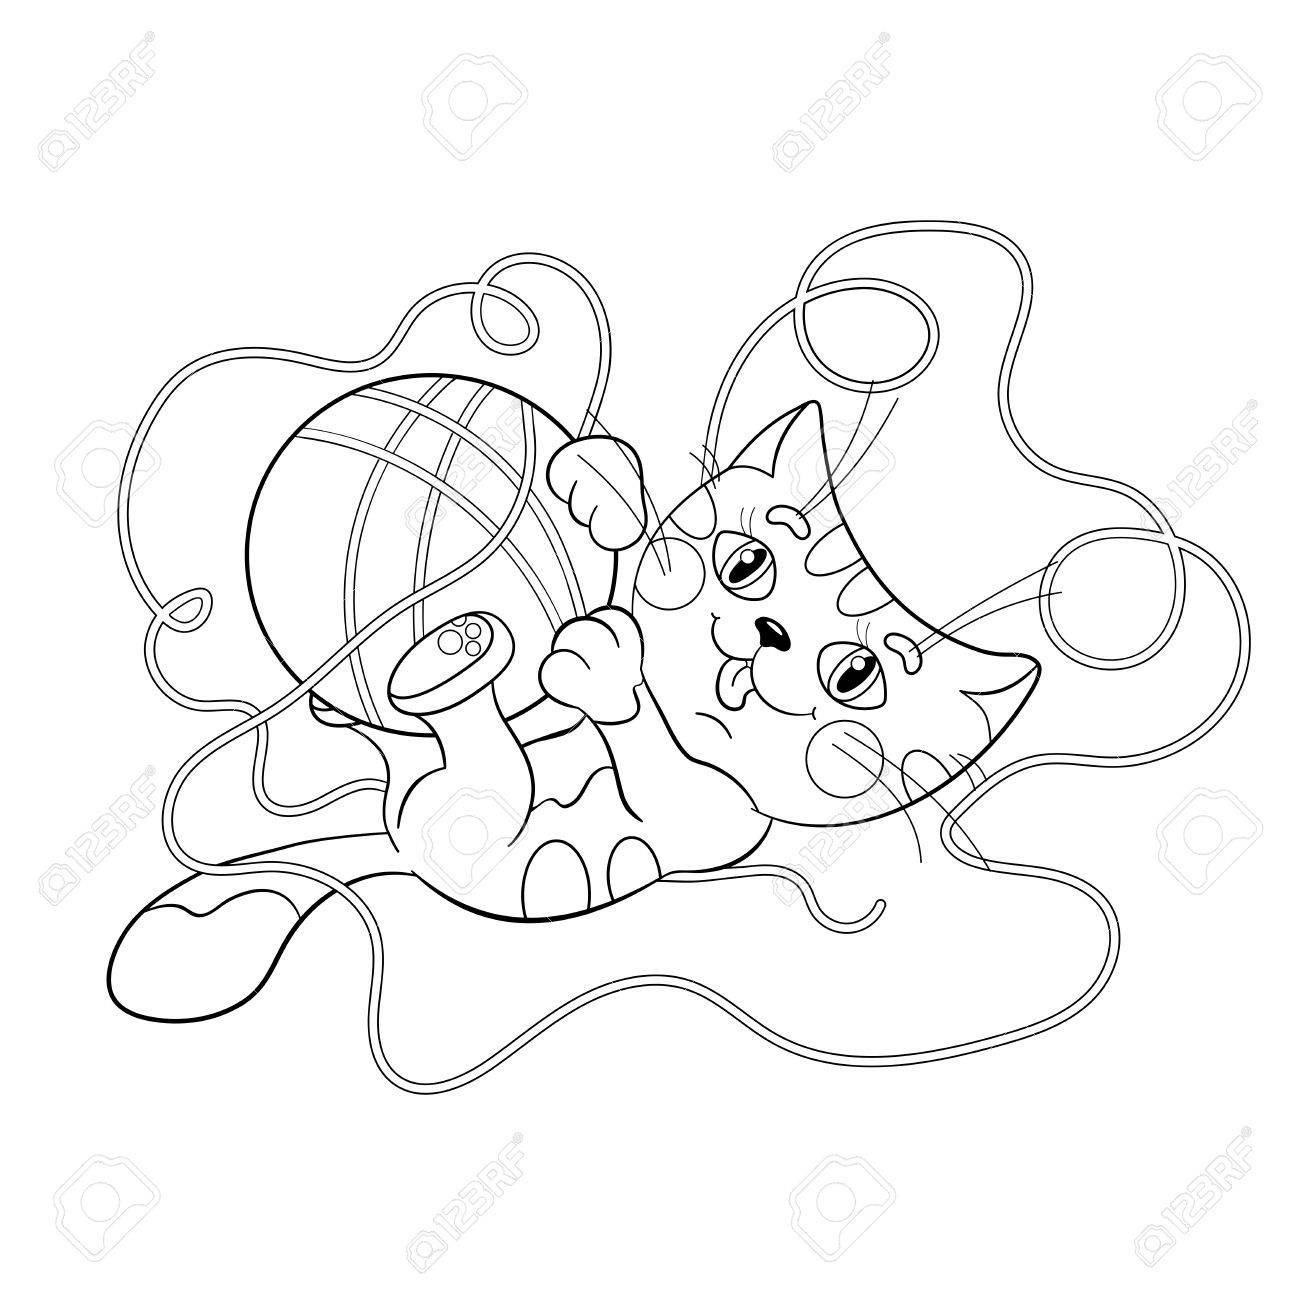 1300x1300 Coloring Page Outline Of A Fluffy Kitten Playing With Ball At Yarn